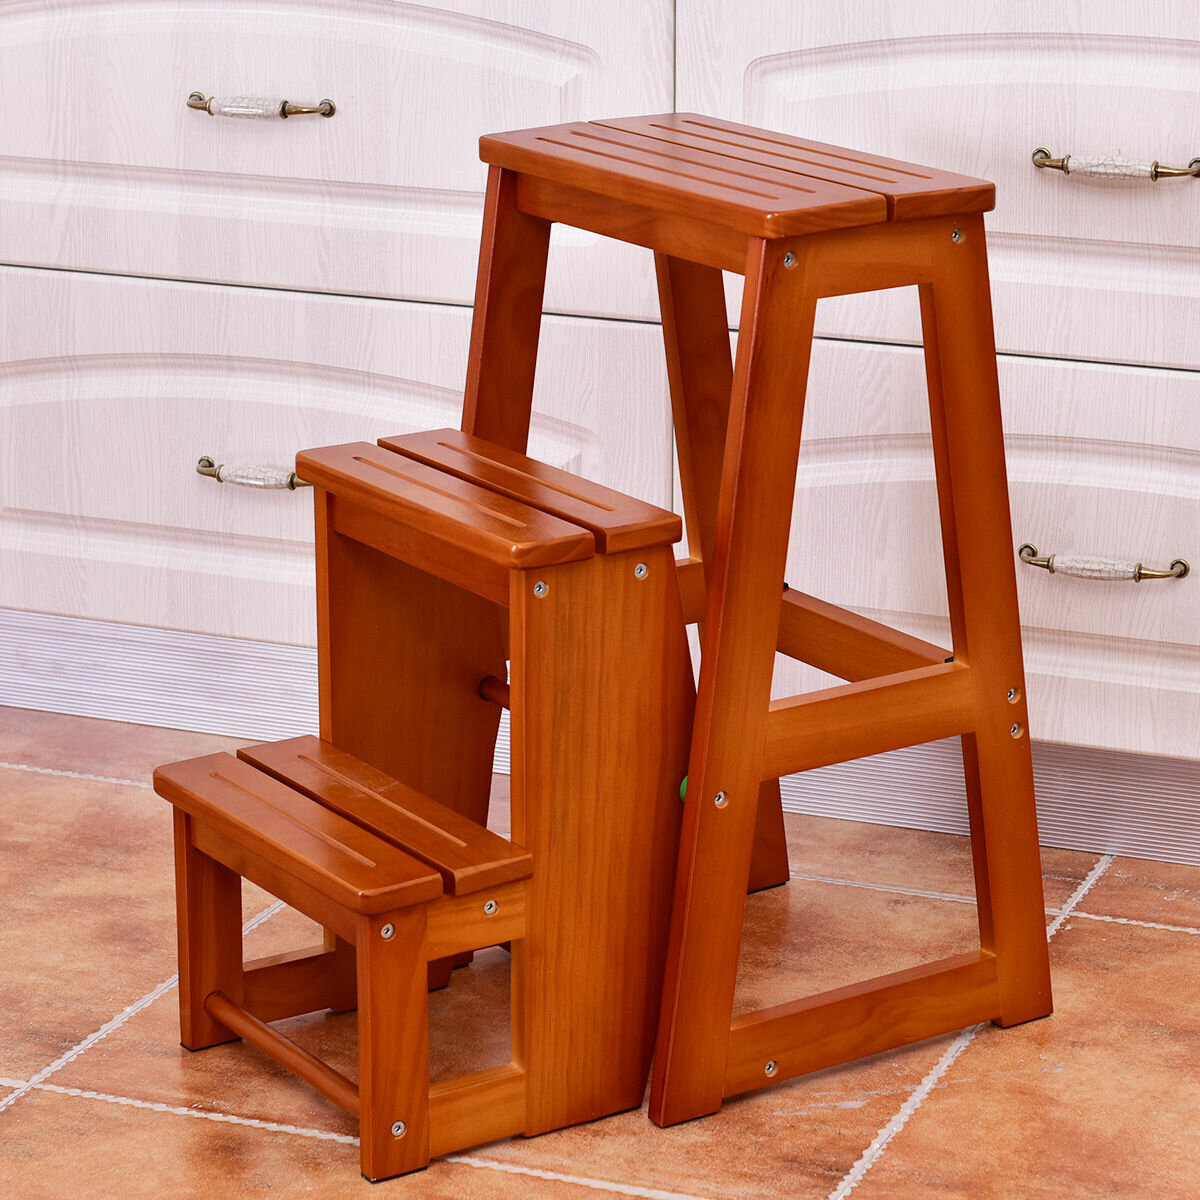 Swell Cantrell Folding 3 Step Wood Step Stool With 200 Lb Load Capacity Machost Co Dining Chair Design Ideas Machostcouk